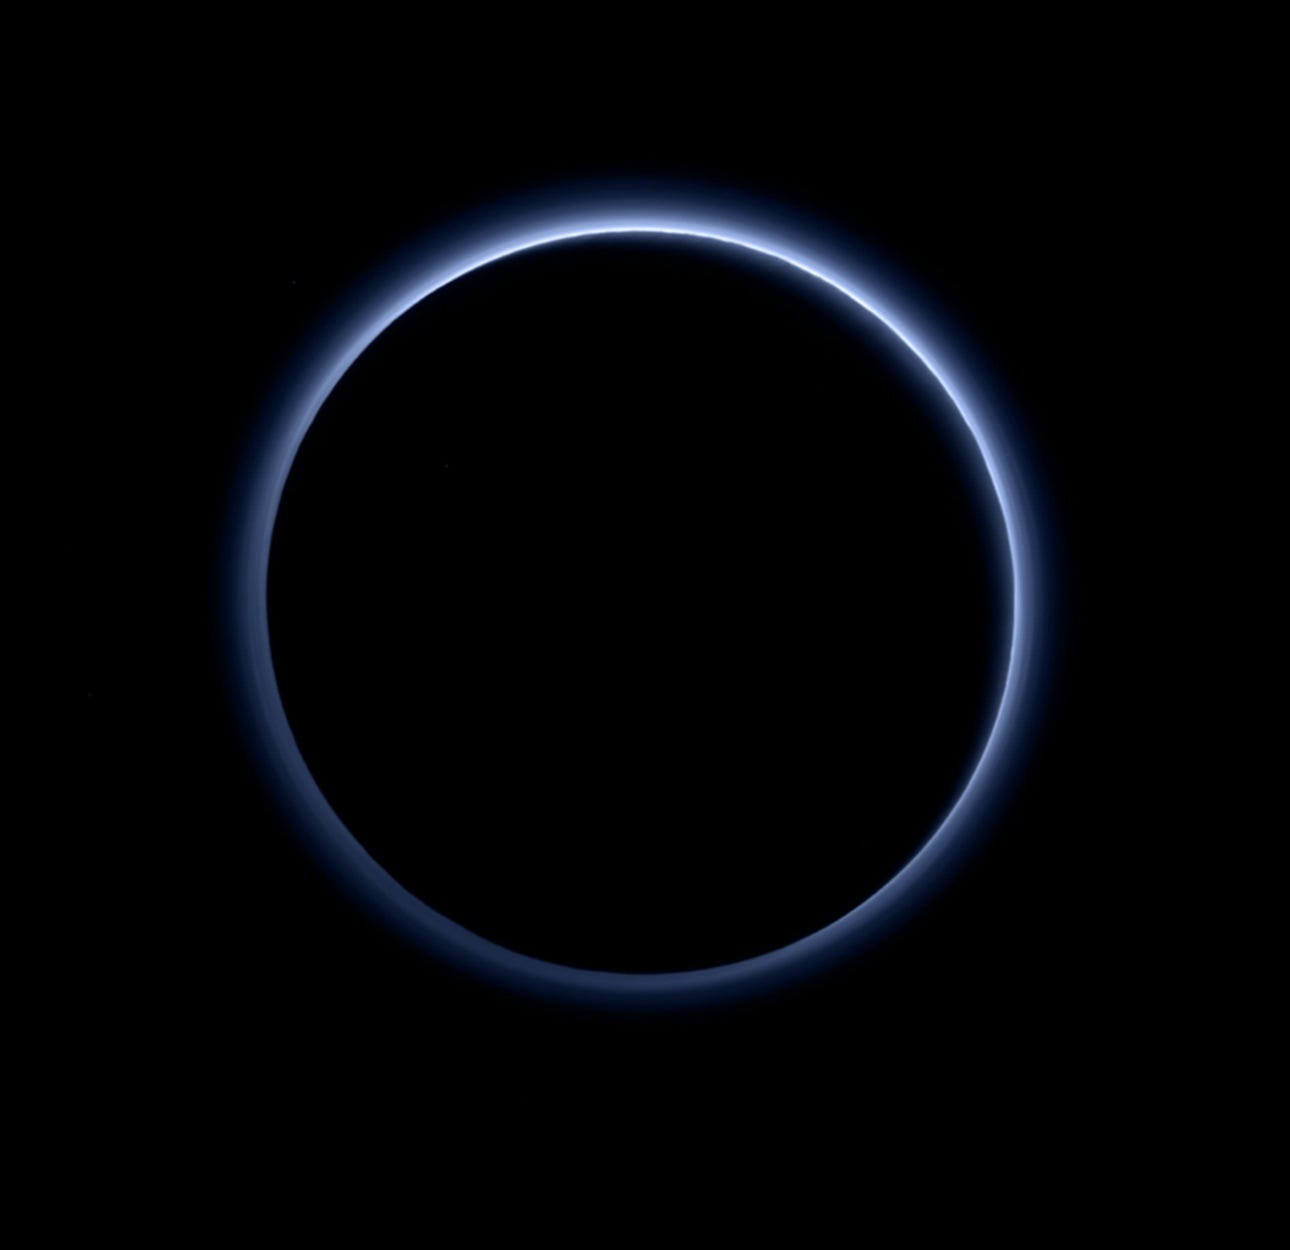 New Pluto photos leave NASA scientists 'reeling'